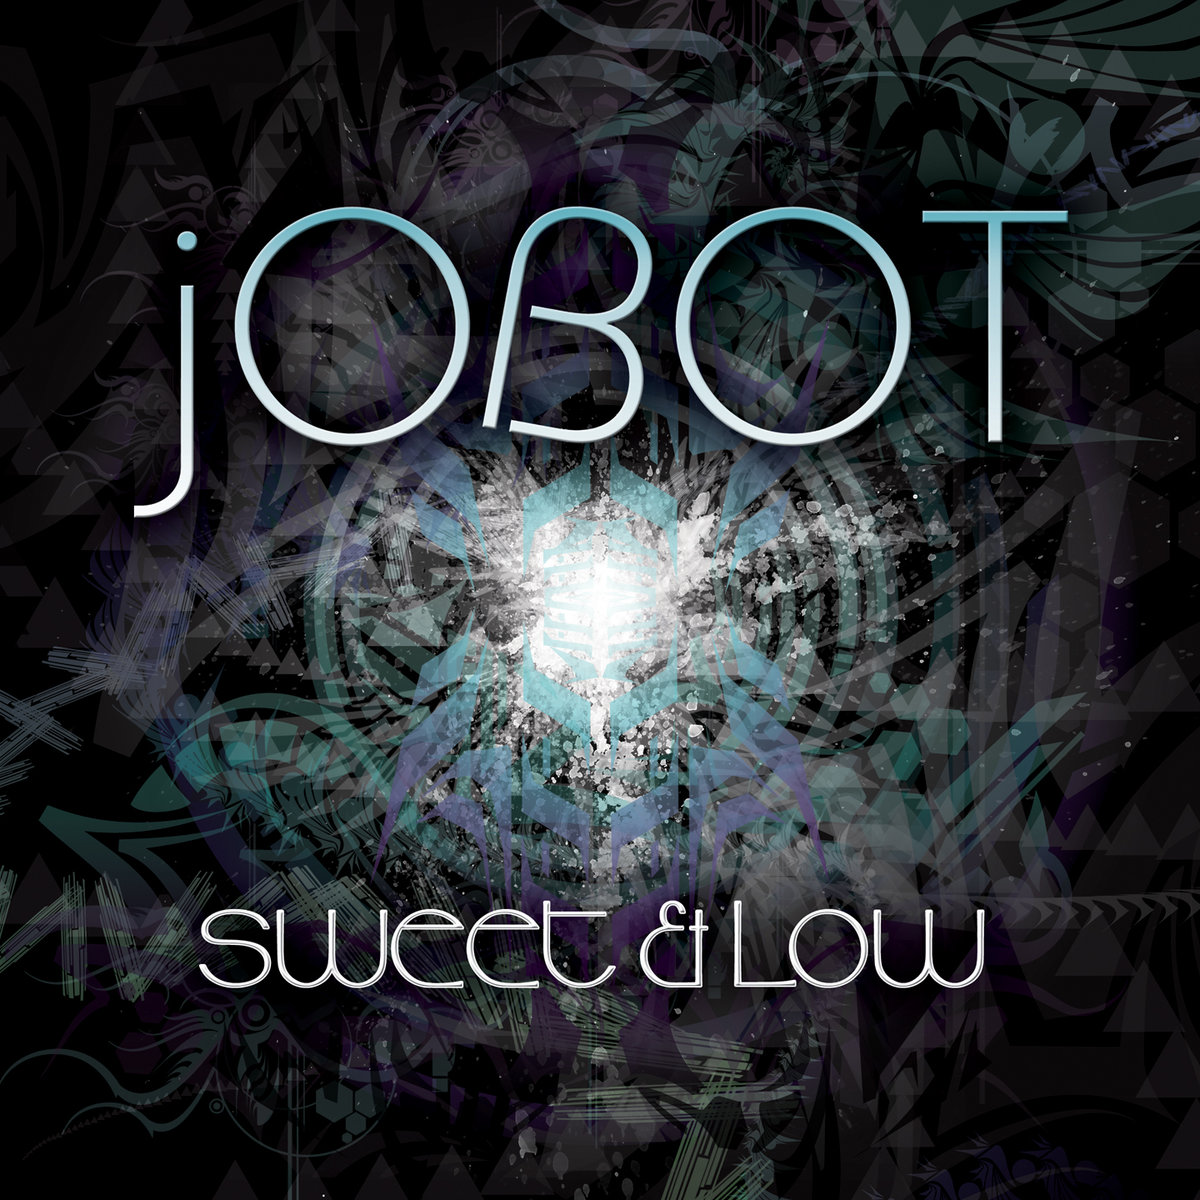 jOBOT - In A Slimy Way @ 'Sweet & Low' album (bass, electronic)